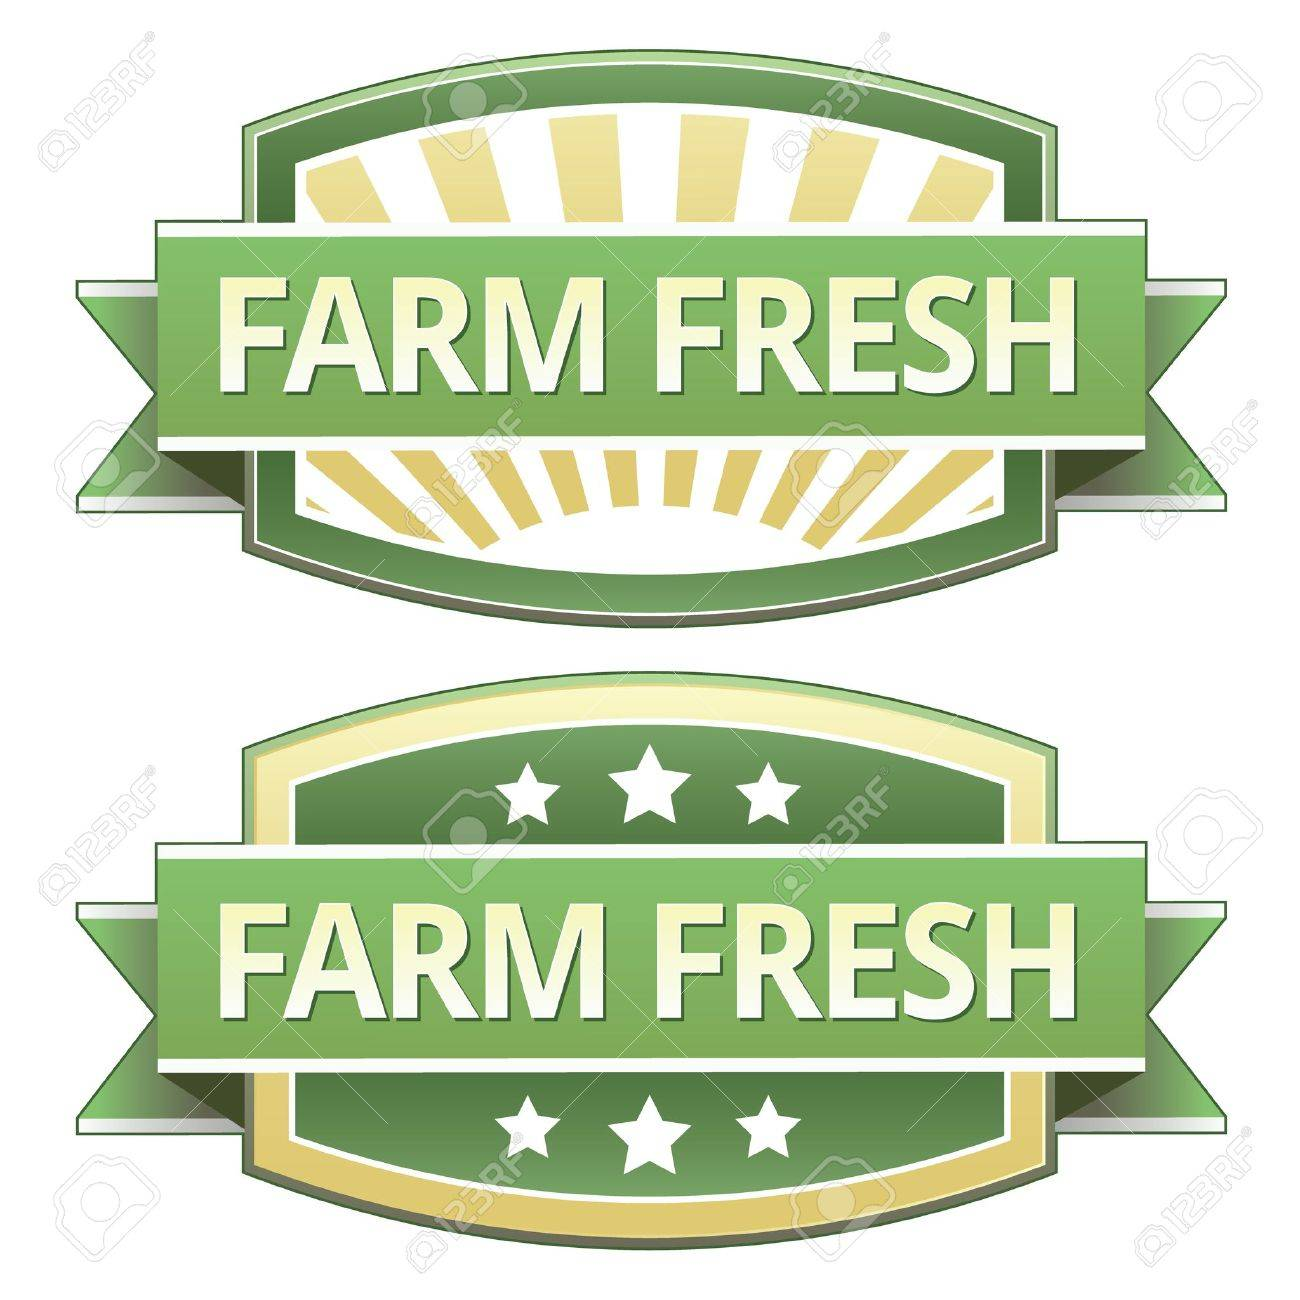 Farm Fresh on yellow and green food label, sticker, button or icon for use on packaging, print, advertising, and websites. Stock Vector - 11575018